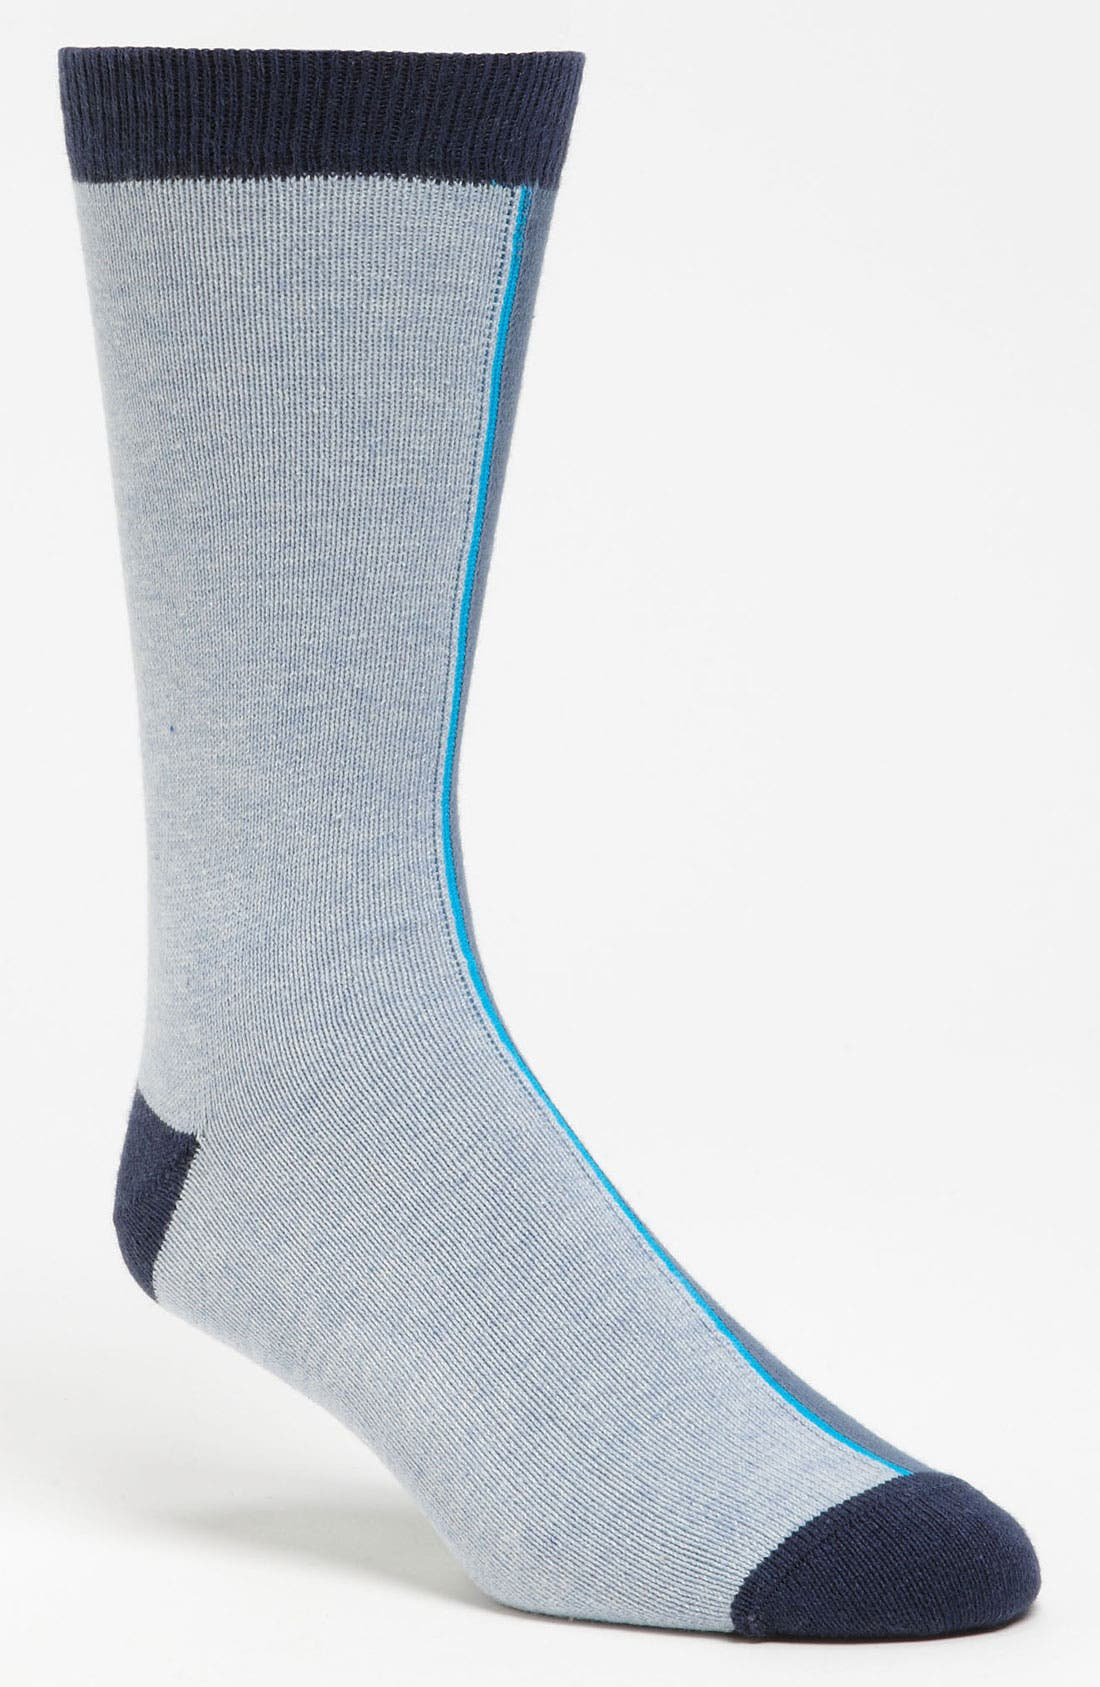 Main Image - Paul Smith Accessories 'London' Vertical Stripe Socks